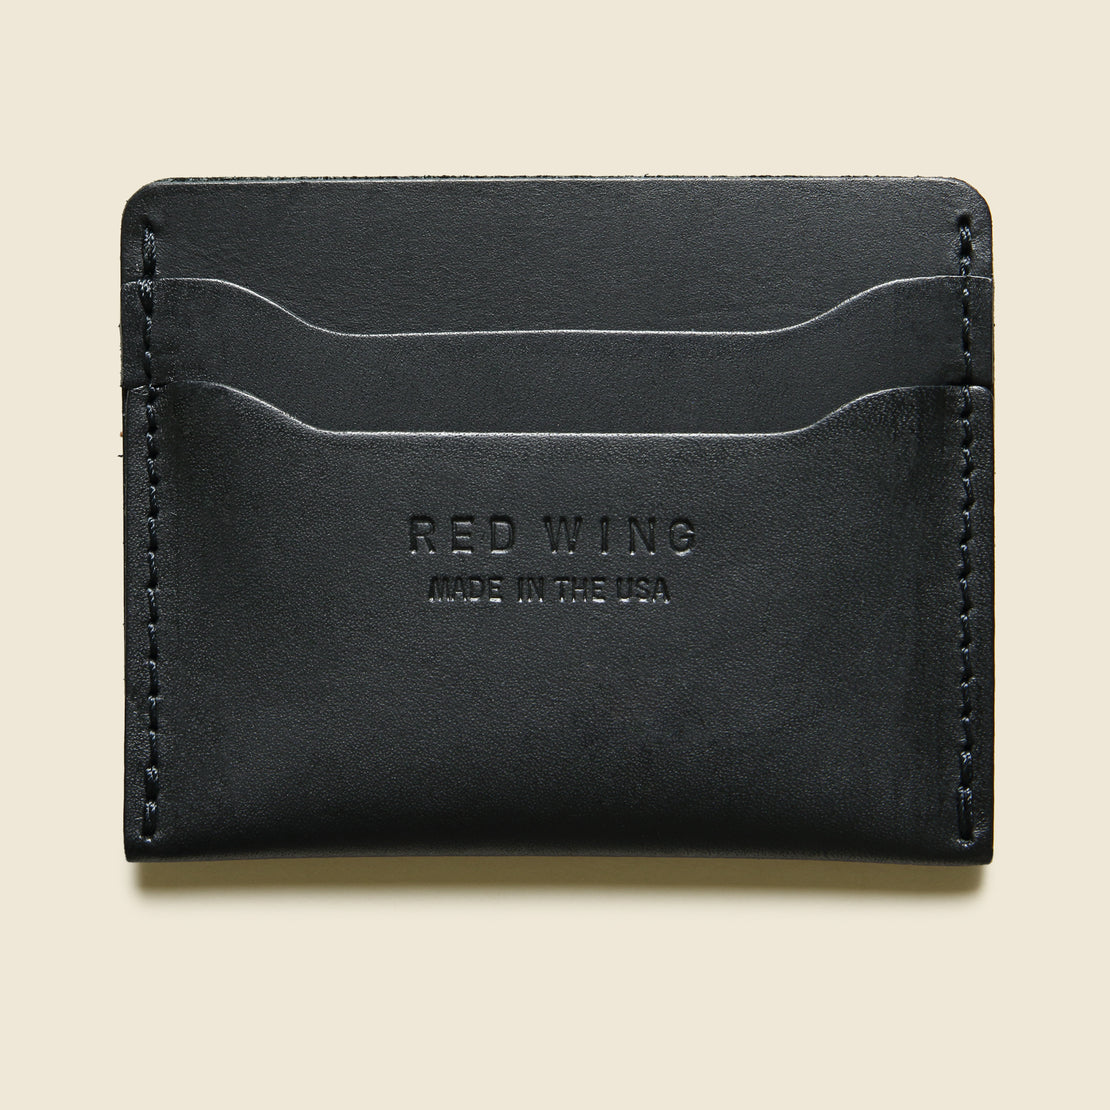 Red Wing Card Holder - Black Frontier